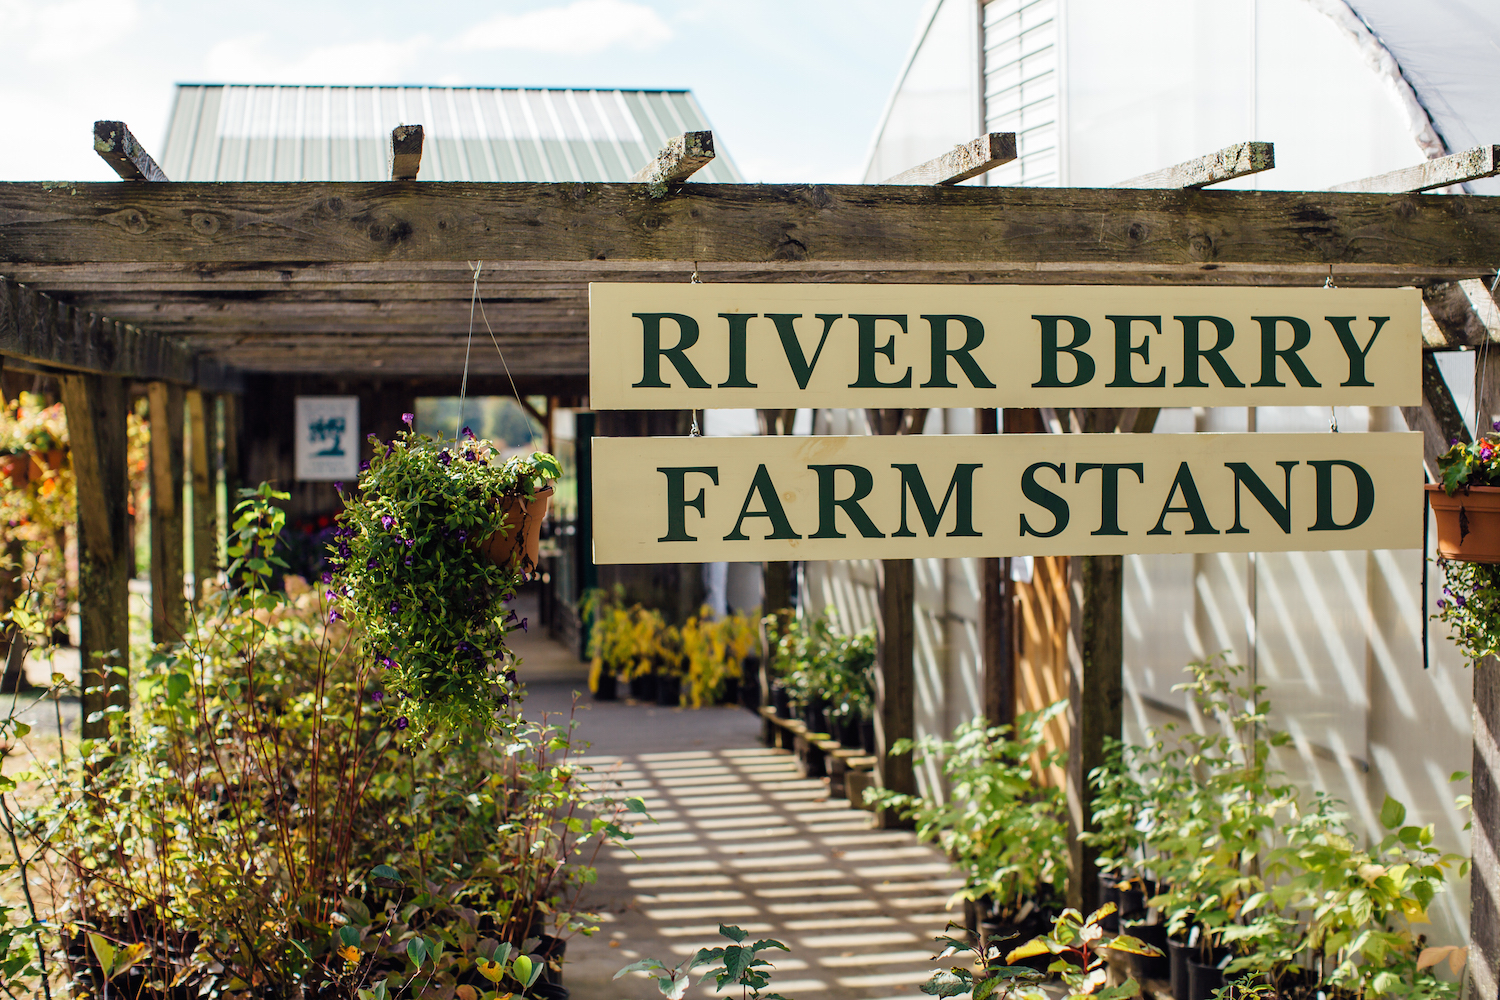 River Berry Farm Stand Photo.jpg